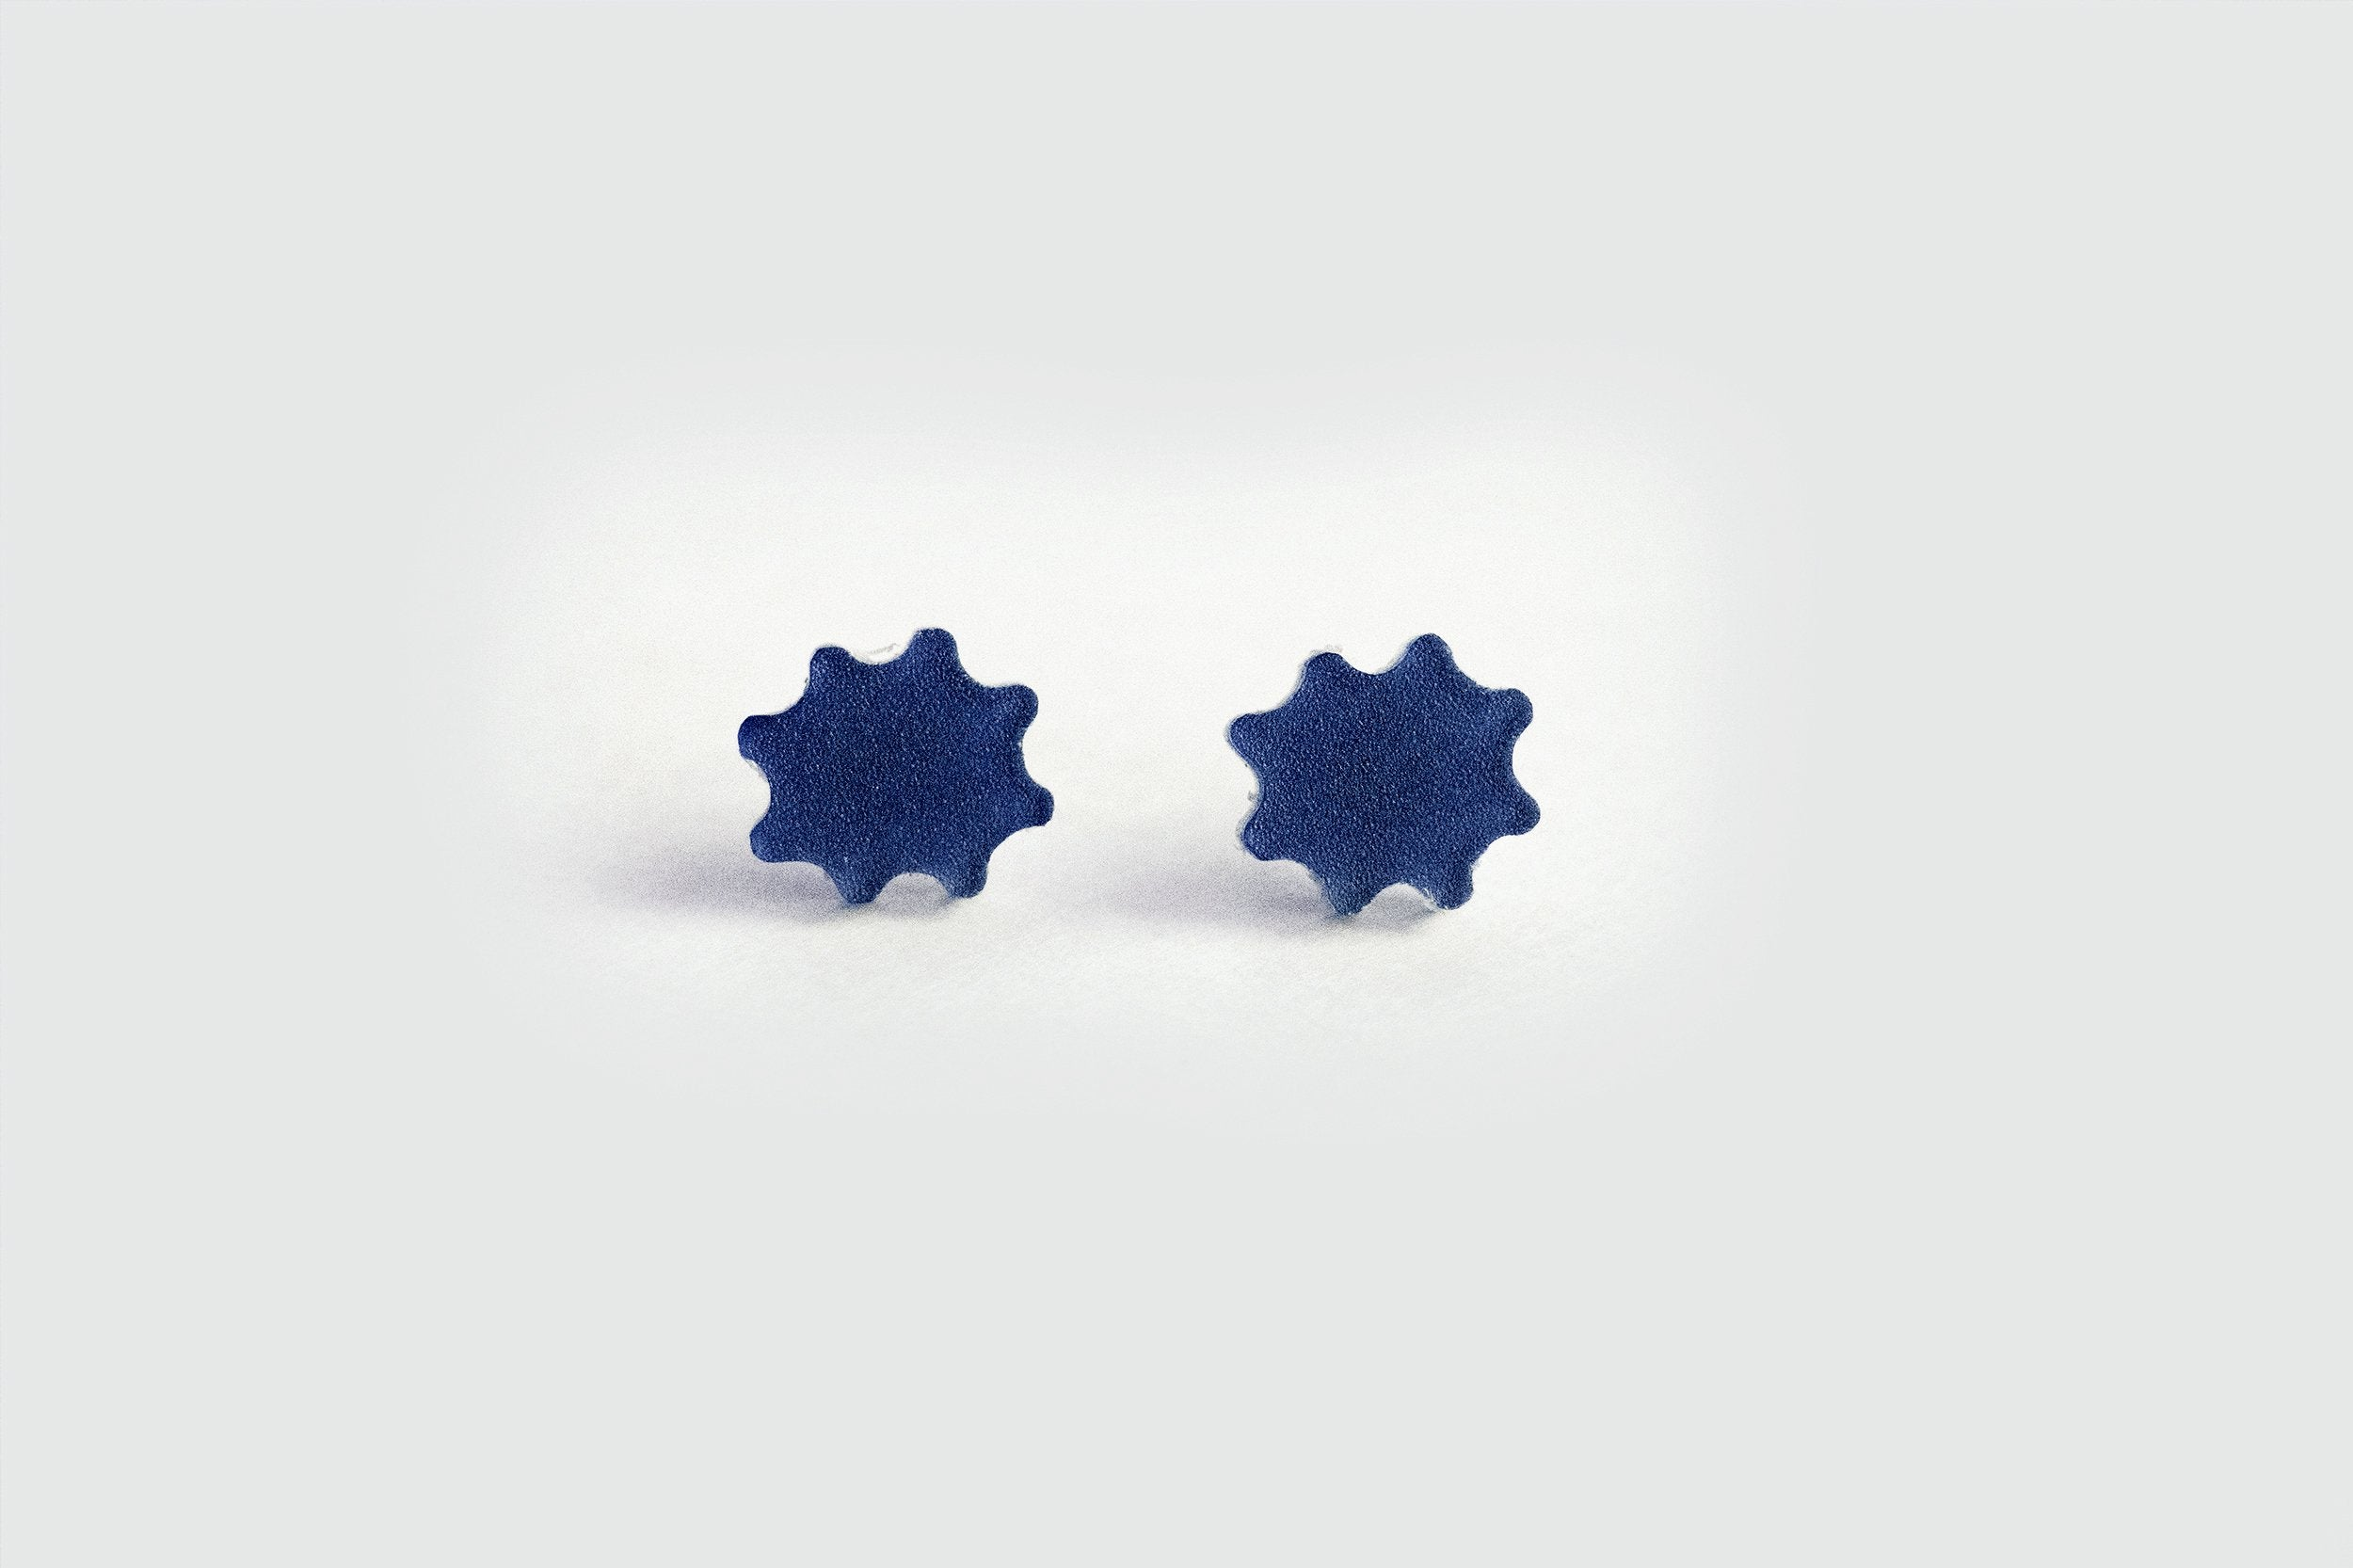 Ecoresin Scallop Earrings - Small Stud